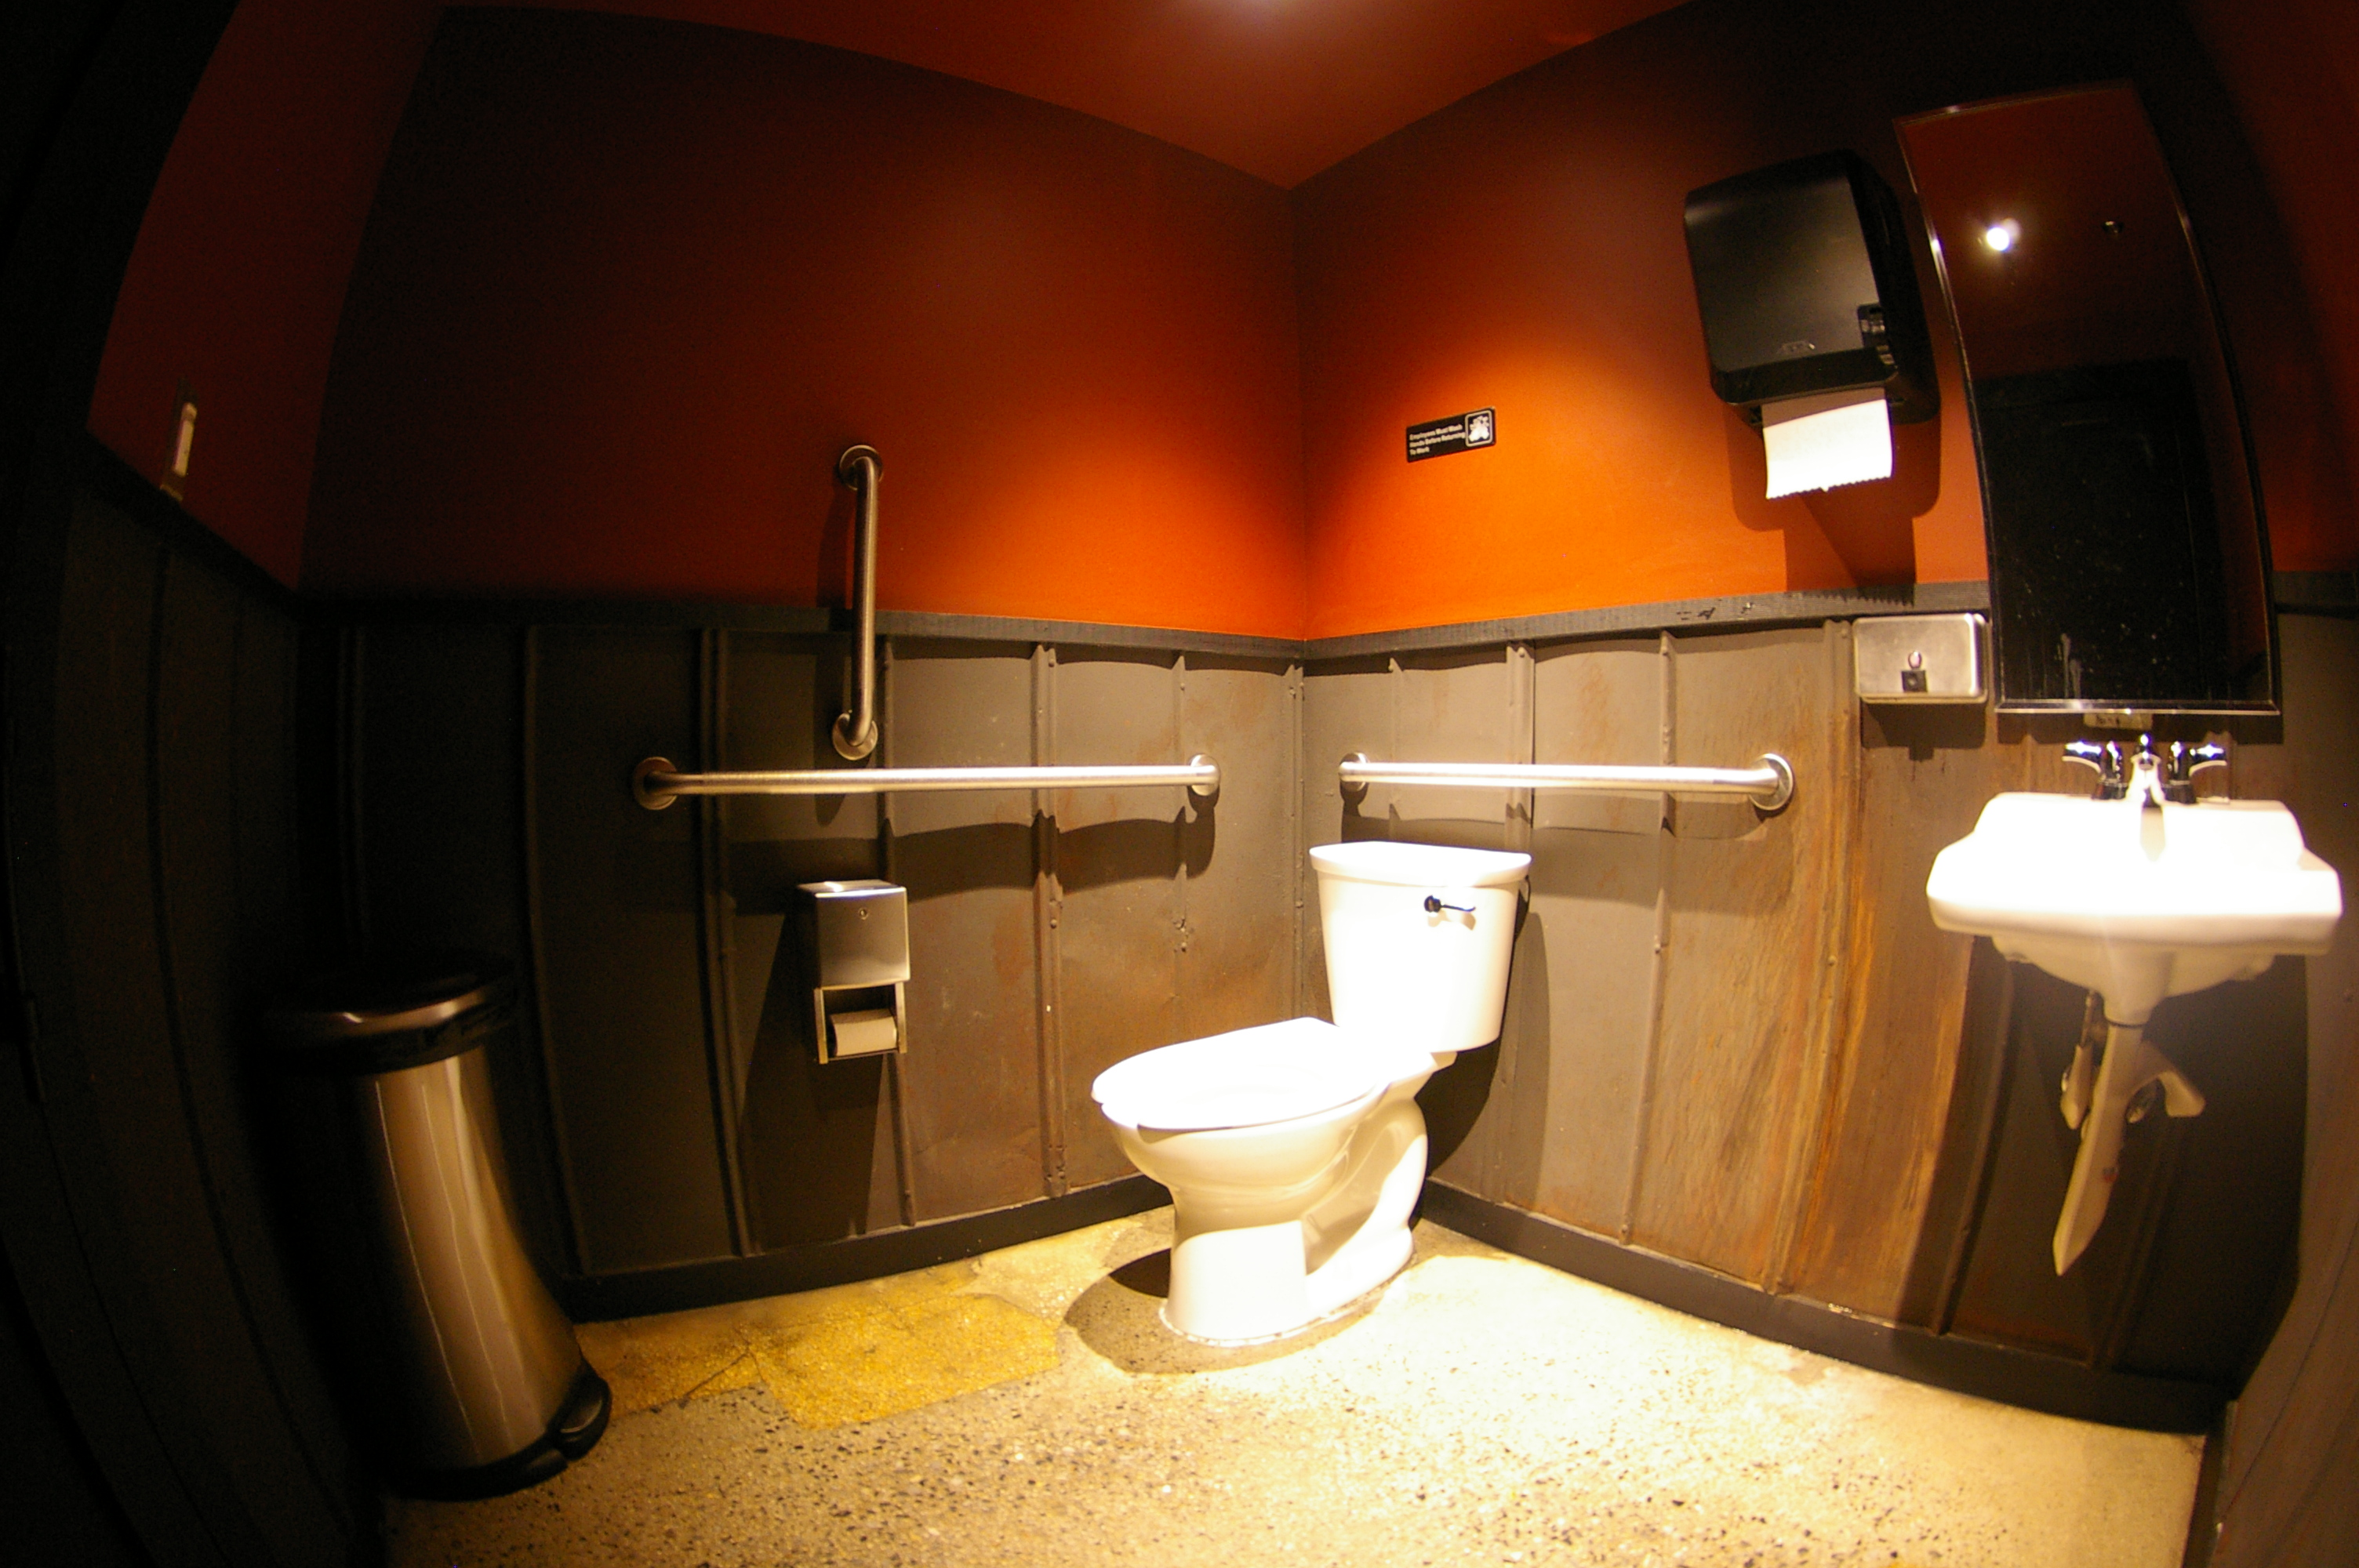 DCity Smokehouse restaurant restroom